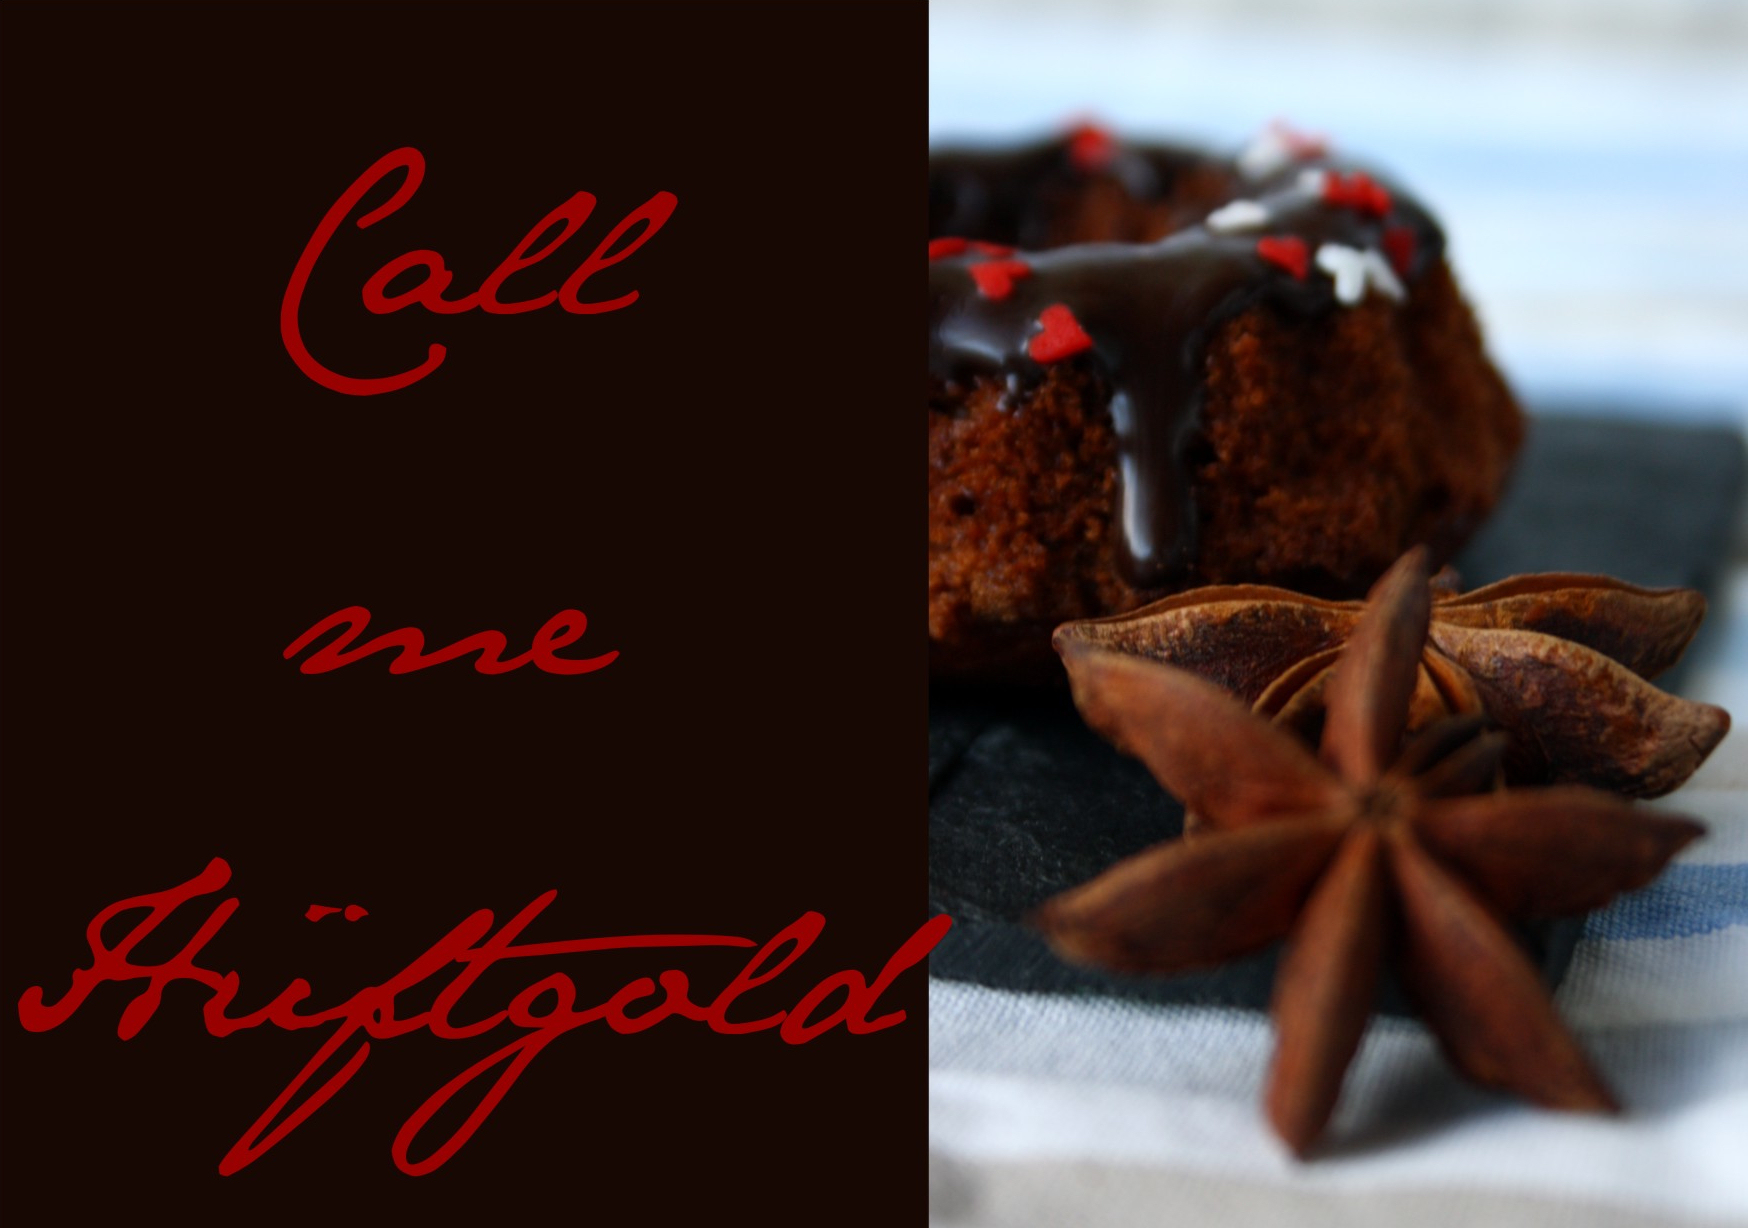 Rotwein Cranberry Gugel // Bundt Cake with Cranberrys and Red Wine by http://babyrockmyday.com/rotwein-cranberry-gugl/